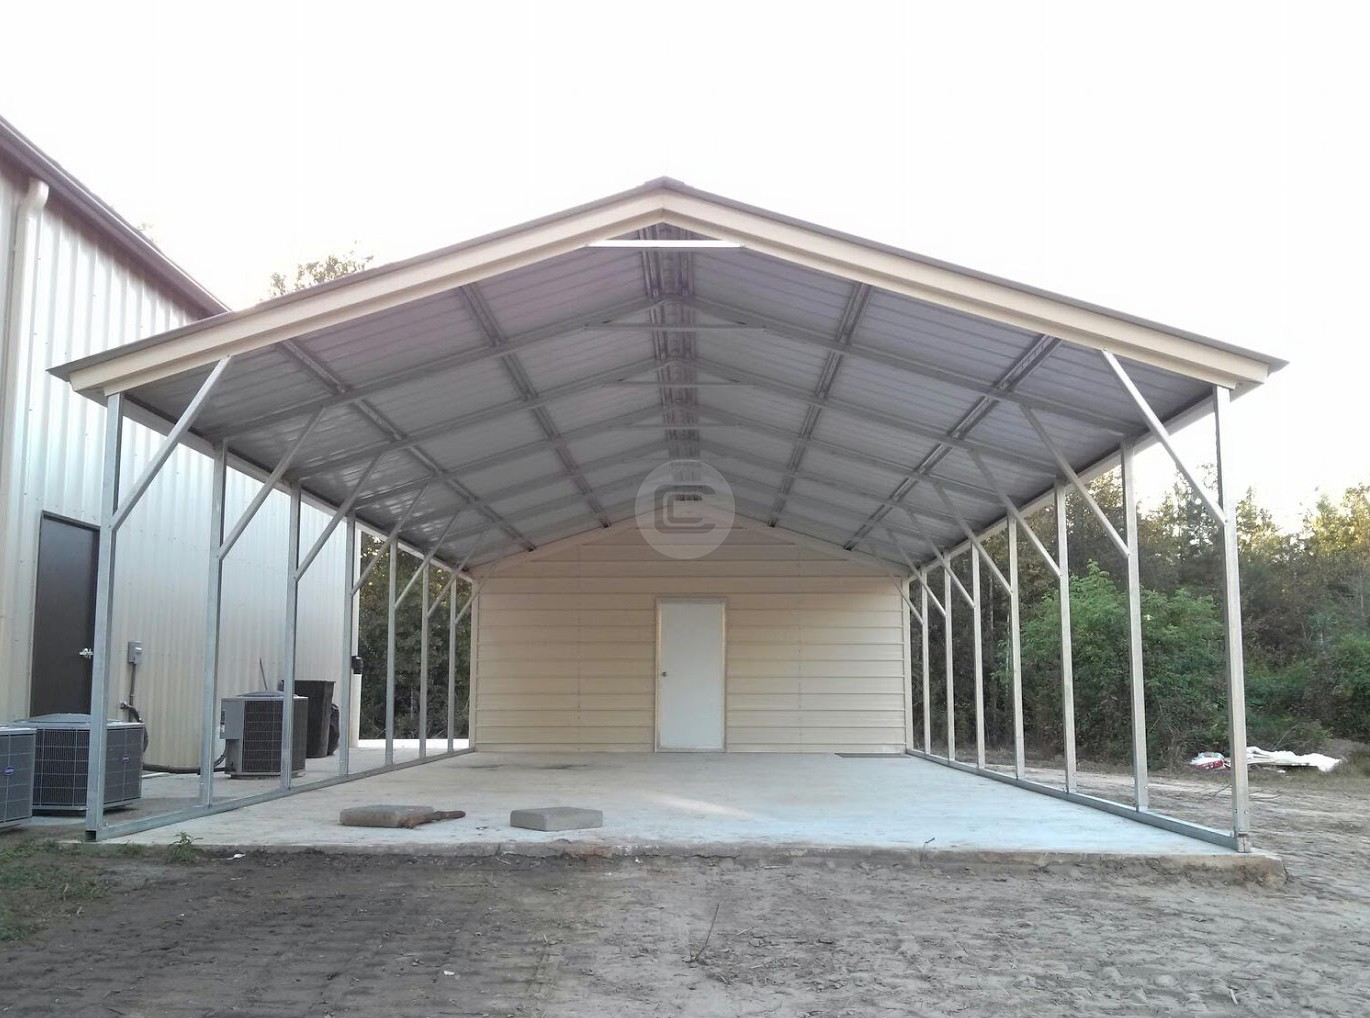 24x41 Utility Carport, Vertical Roof Storage, Enclosed Carport